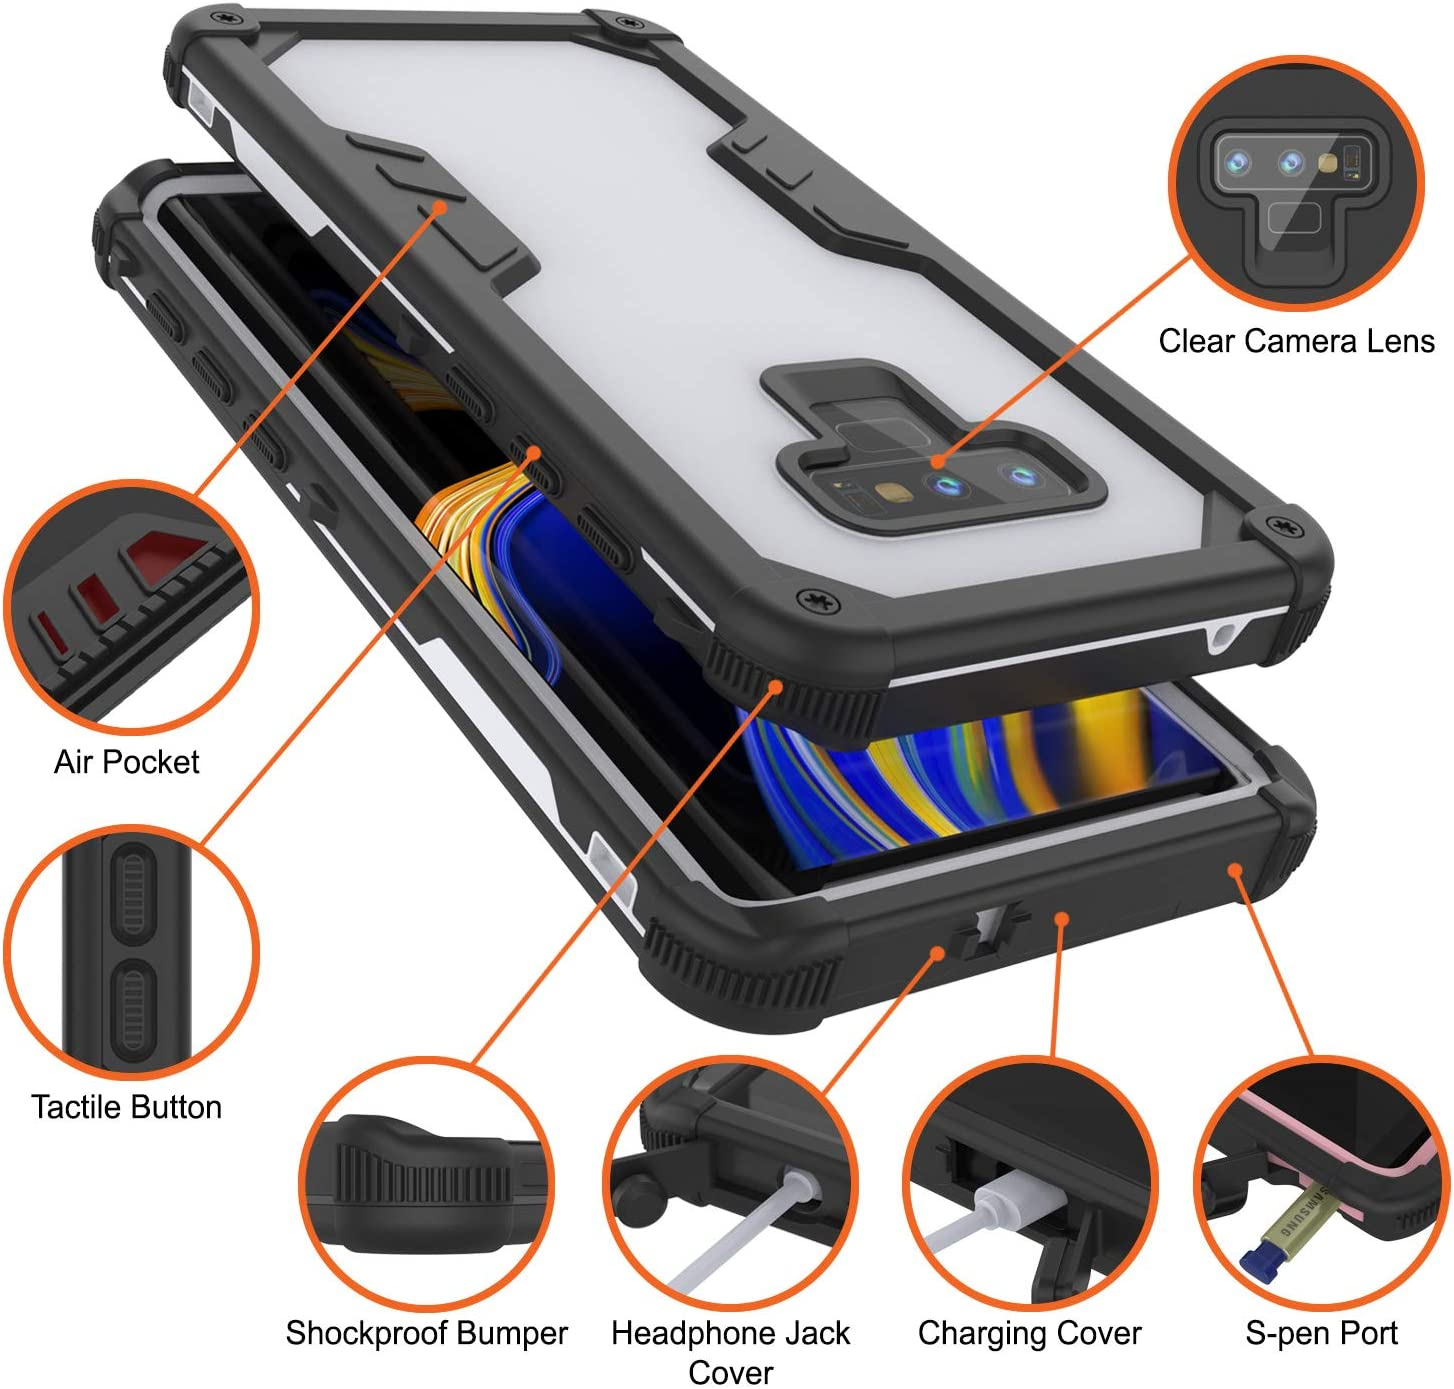 Navy Seal Extreme Series Dirtproof PunkCase Galaxy Note 9 Waterproof Case 360 Full Body Armor Cover Compatible With Samsung Galaxy Note 9 Shockproof Black IP68 Certified Slim Fit